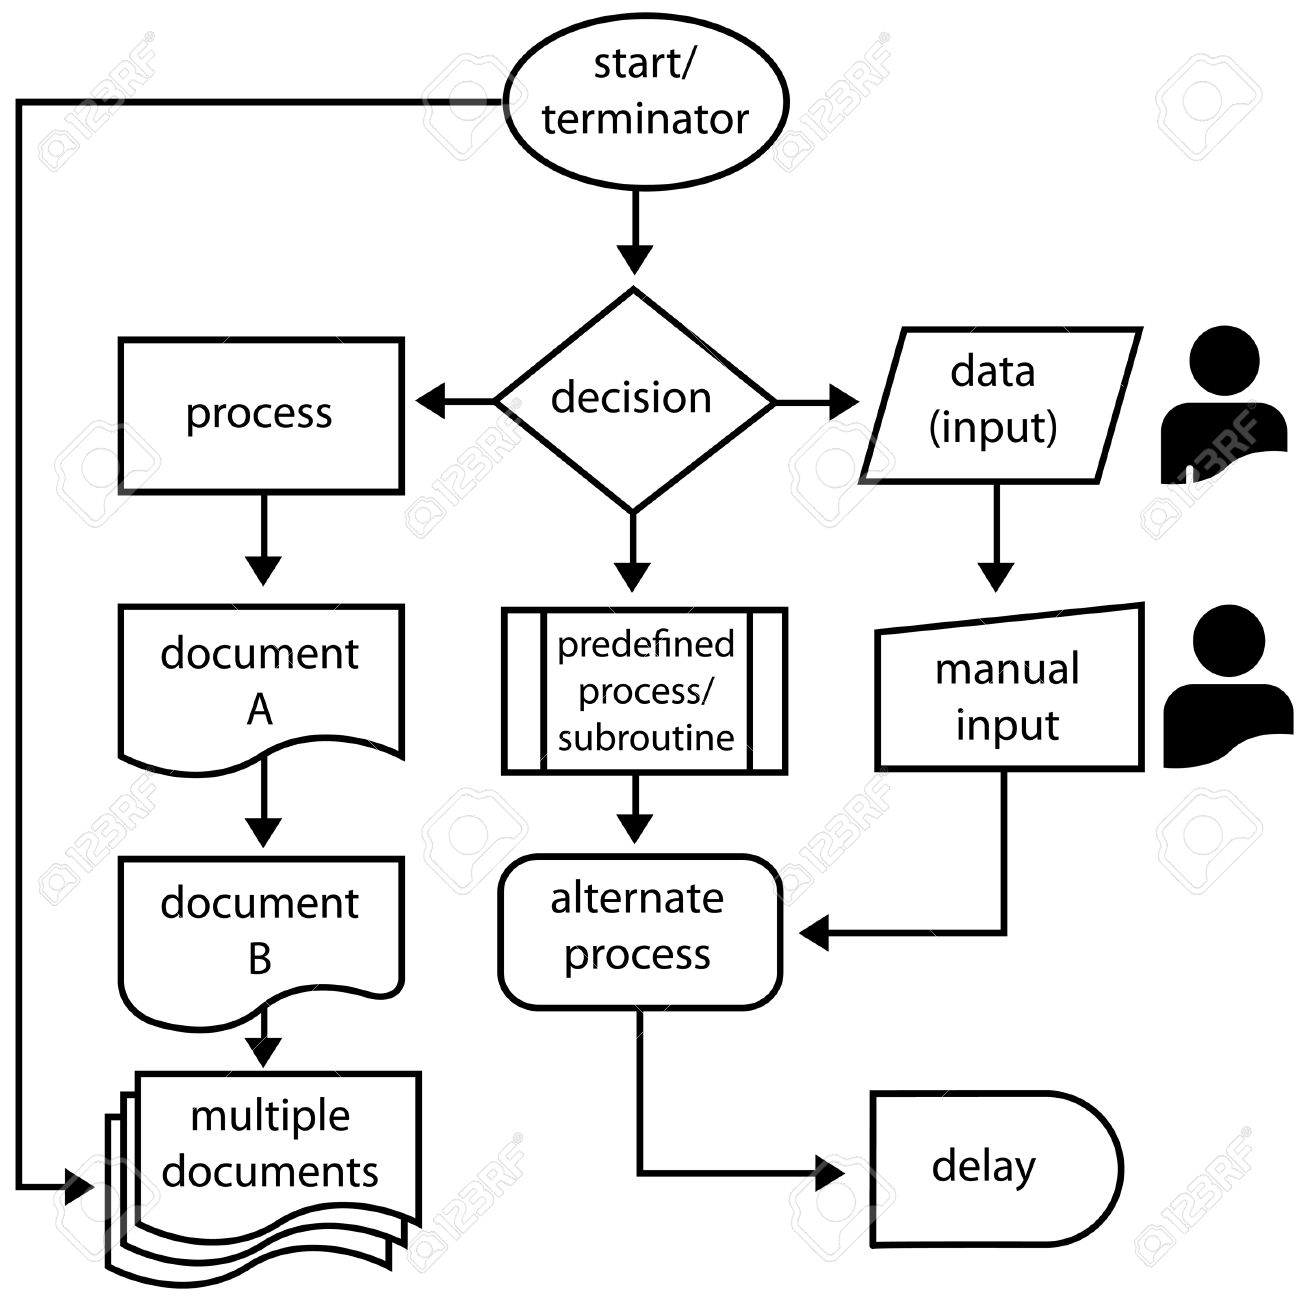 Flowchart symbols with labels and flow arrows for computer and flowchart symbols with labels and flow arrows for computer and process management stock vector nvjuhfo Images